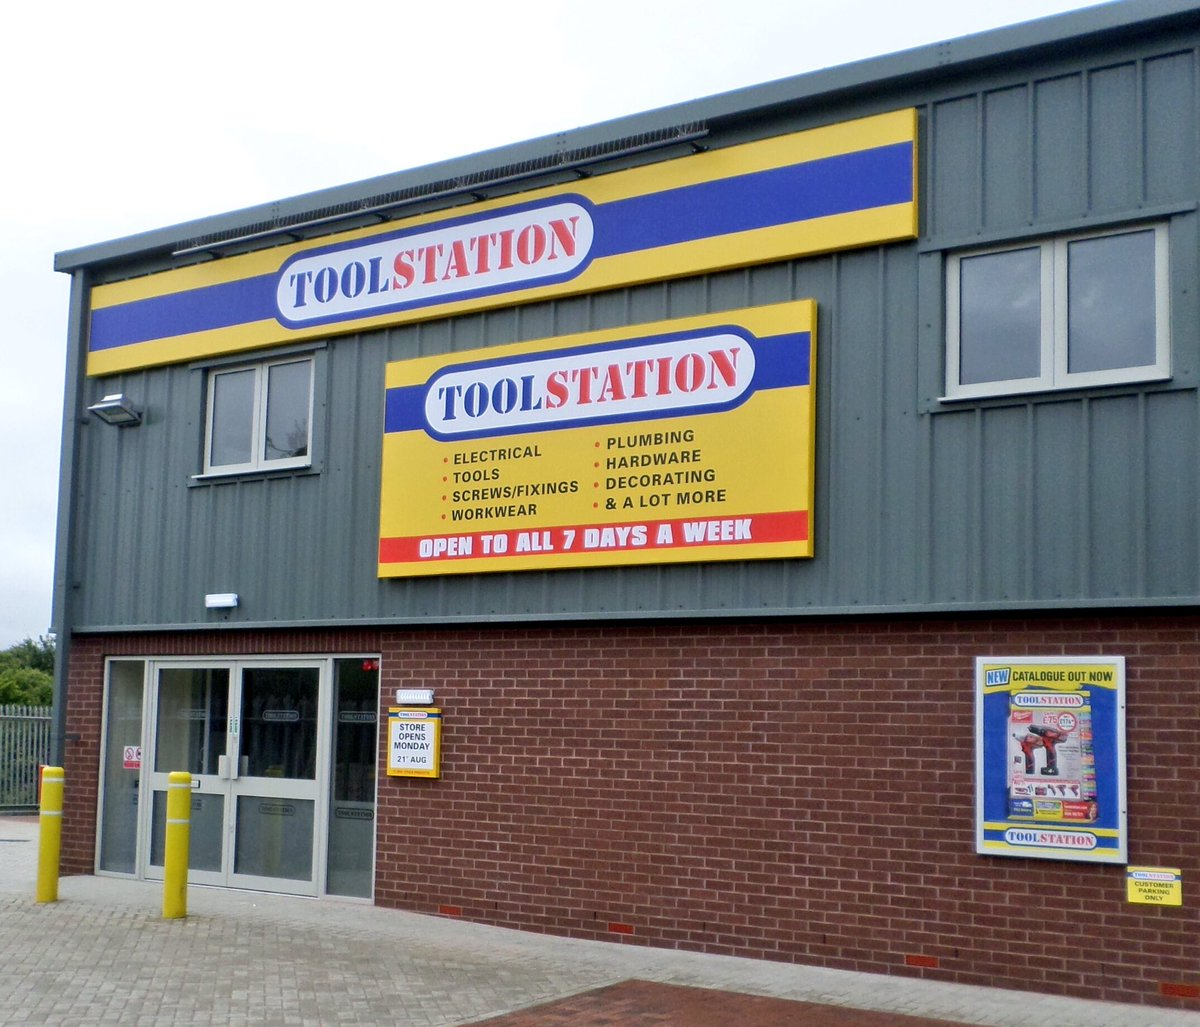 #Rochester now have their own @ToolstationUK branch OPENS Monday! Great work this week by all involved, including our guys on the #signage.<br>http://pic.twitter.com/vk2bhIRtF6